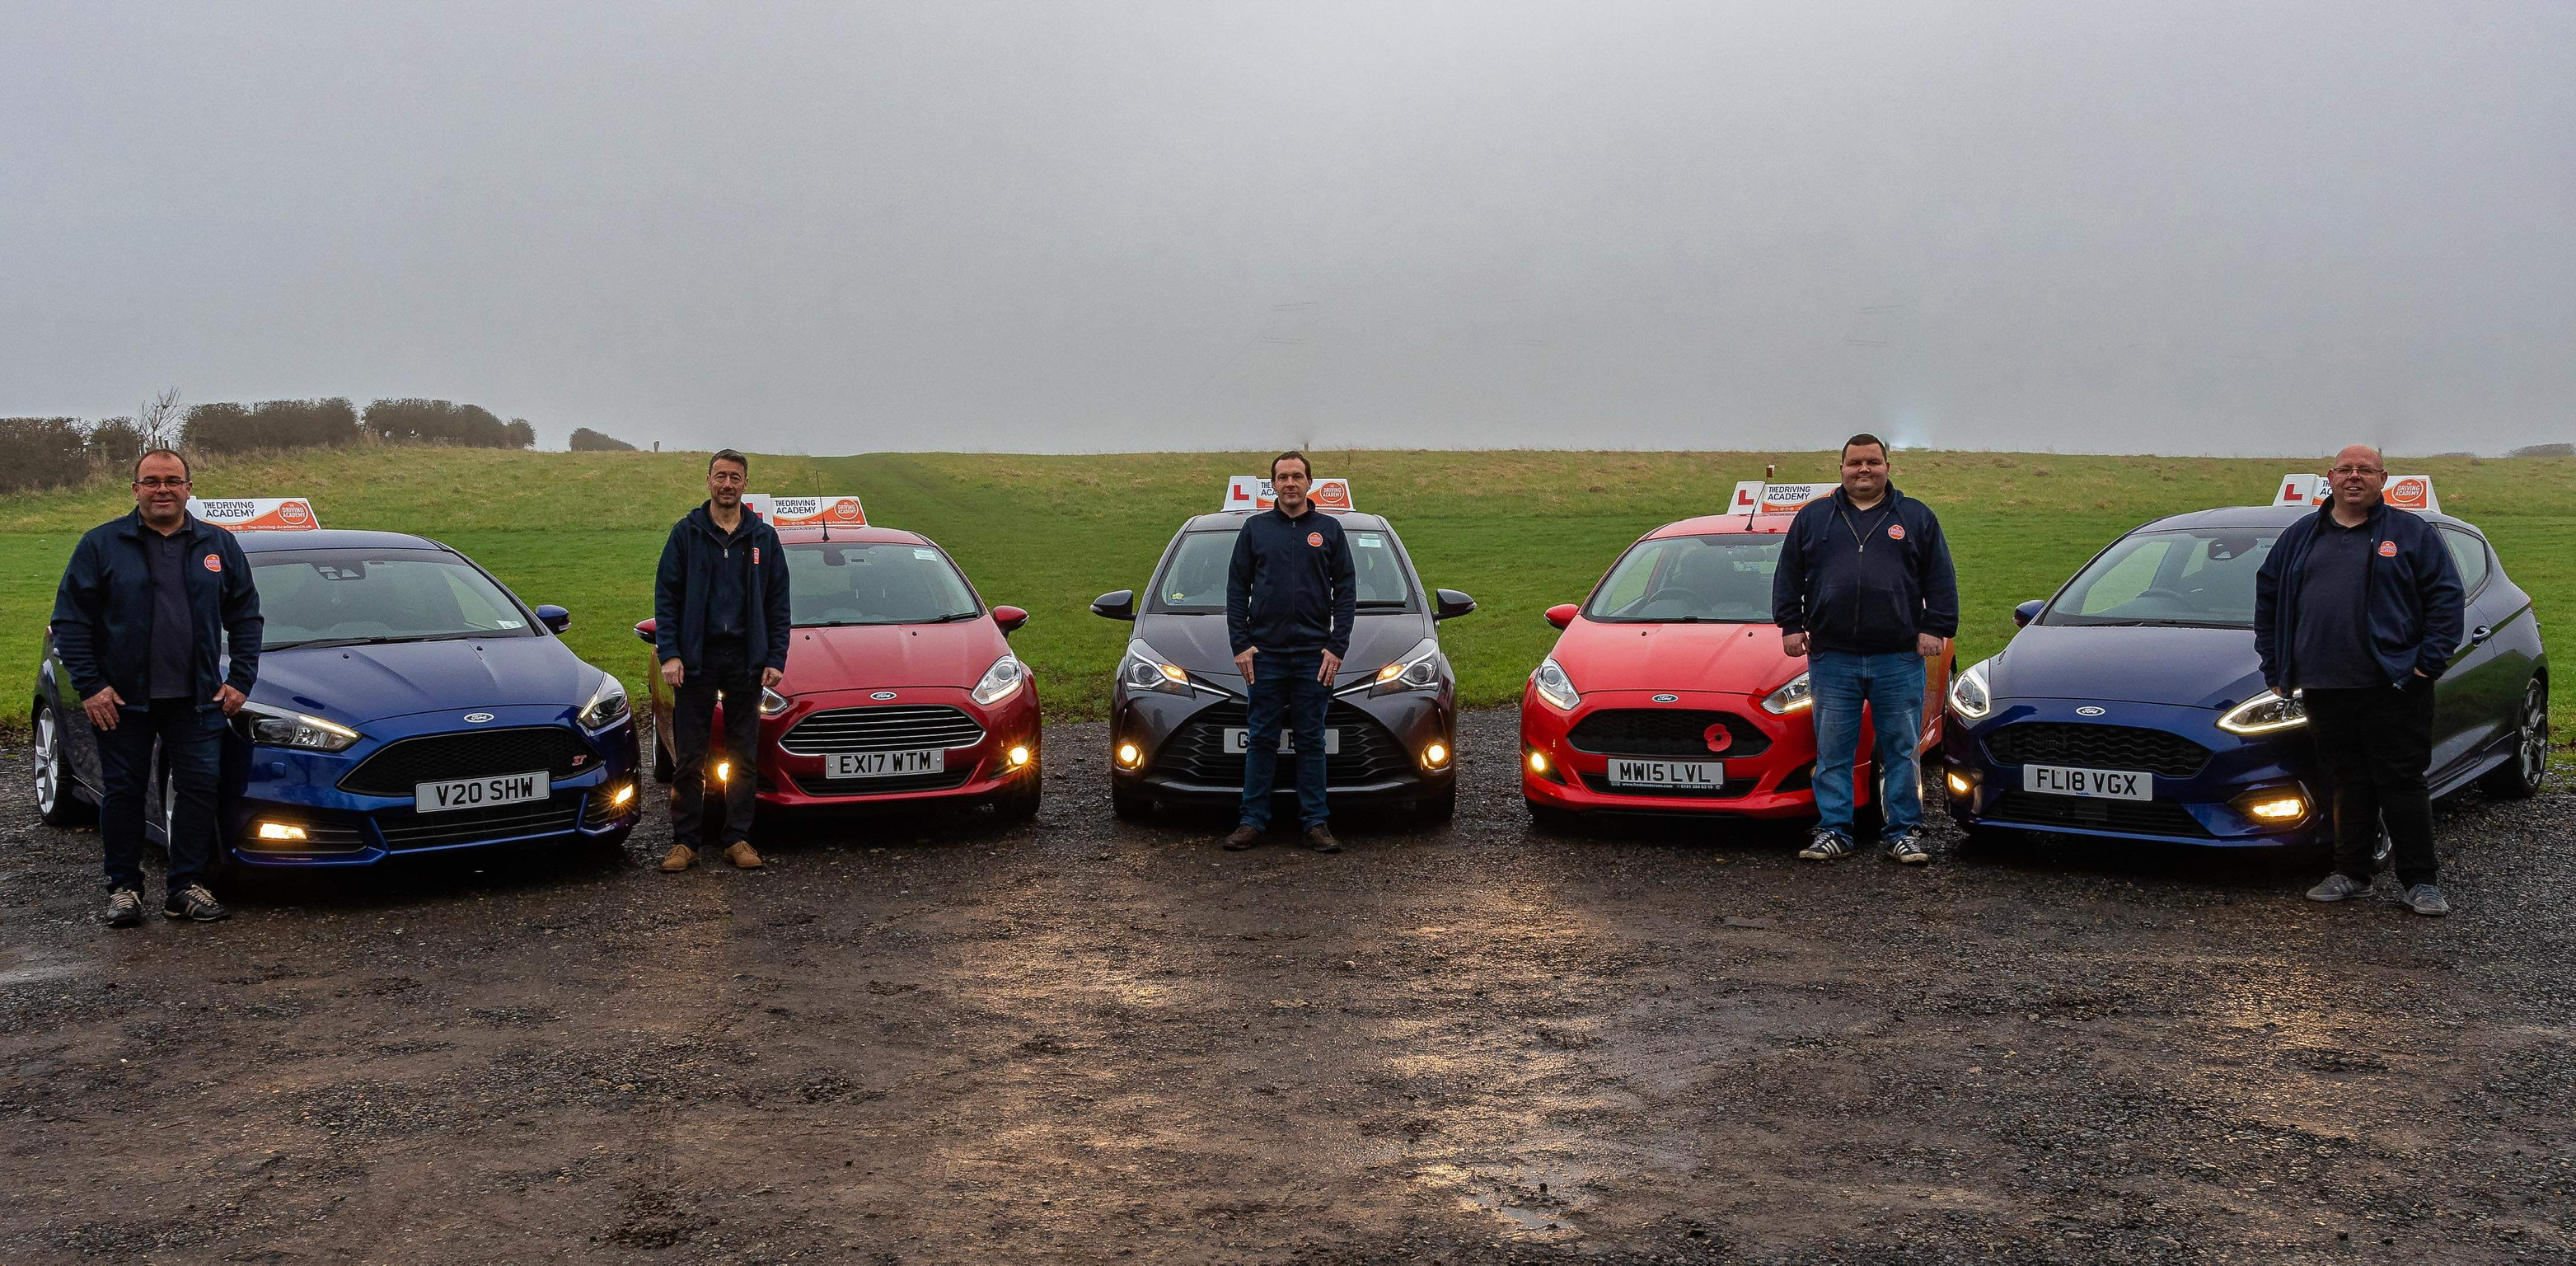 The-Driving-Academy team of instructors